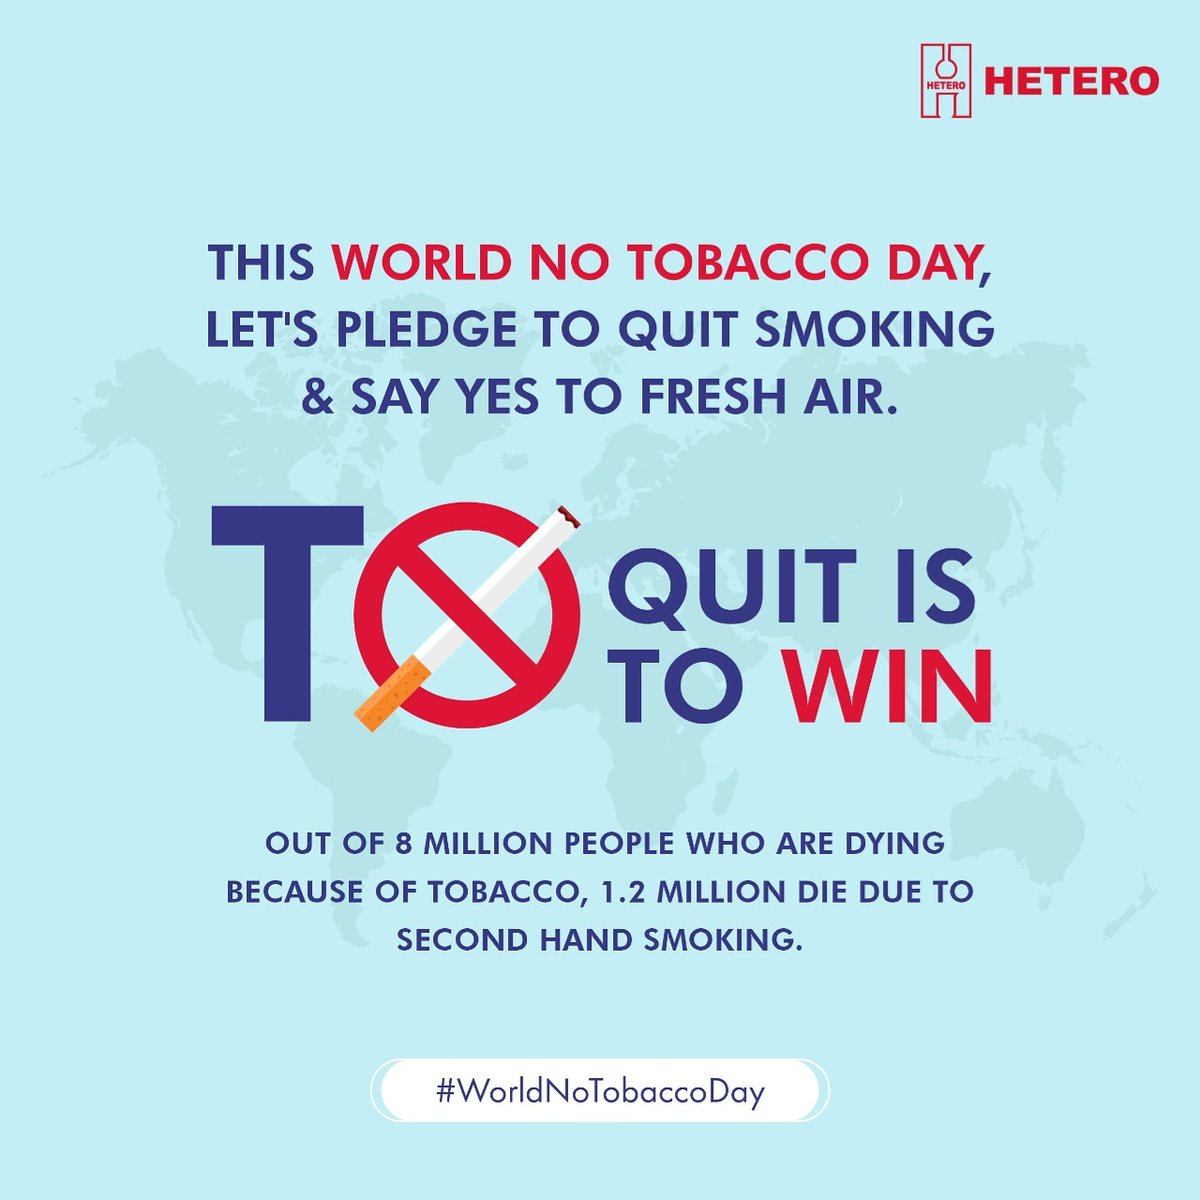 Let us all take a pledge to do our bit by putting an end to this life threatening habit. For the betterment and safety of the society and your own health, say no to tobacco. #WorldNoTobaccoDay   #Hetero #Pharma #Healthy #Health #HealthyLifestyle #HealthyLiving #HealthyLifepic.twitter.com/hCdXooF1Cy